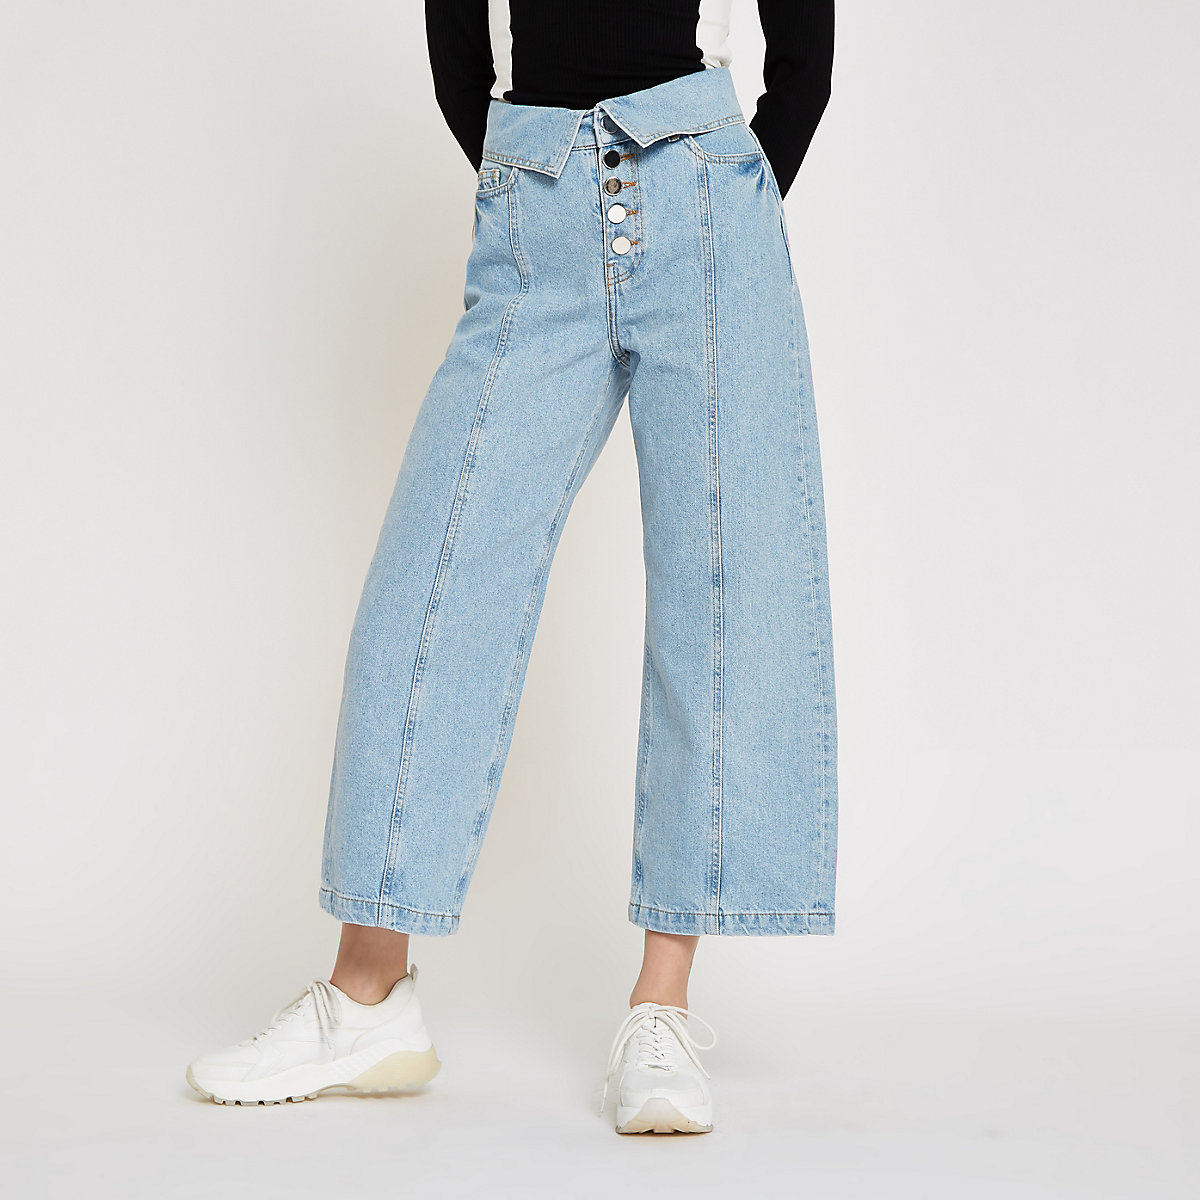 Light blue Alexa culotte jeans